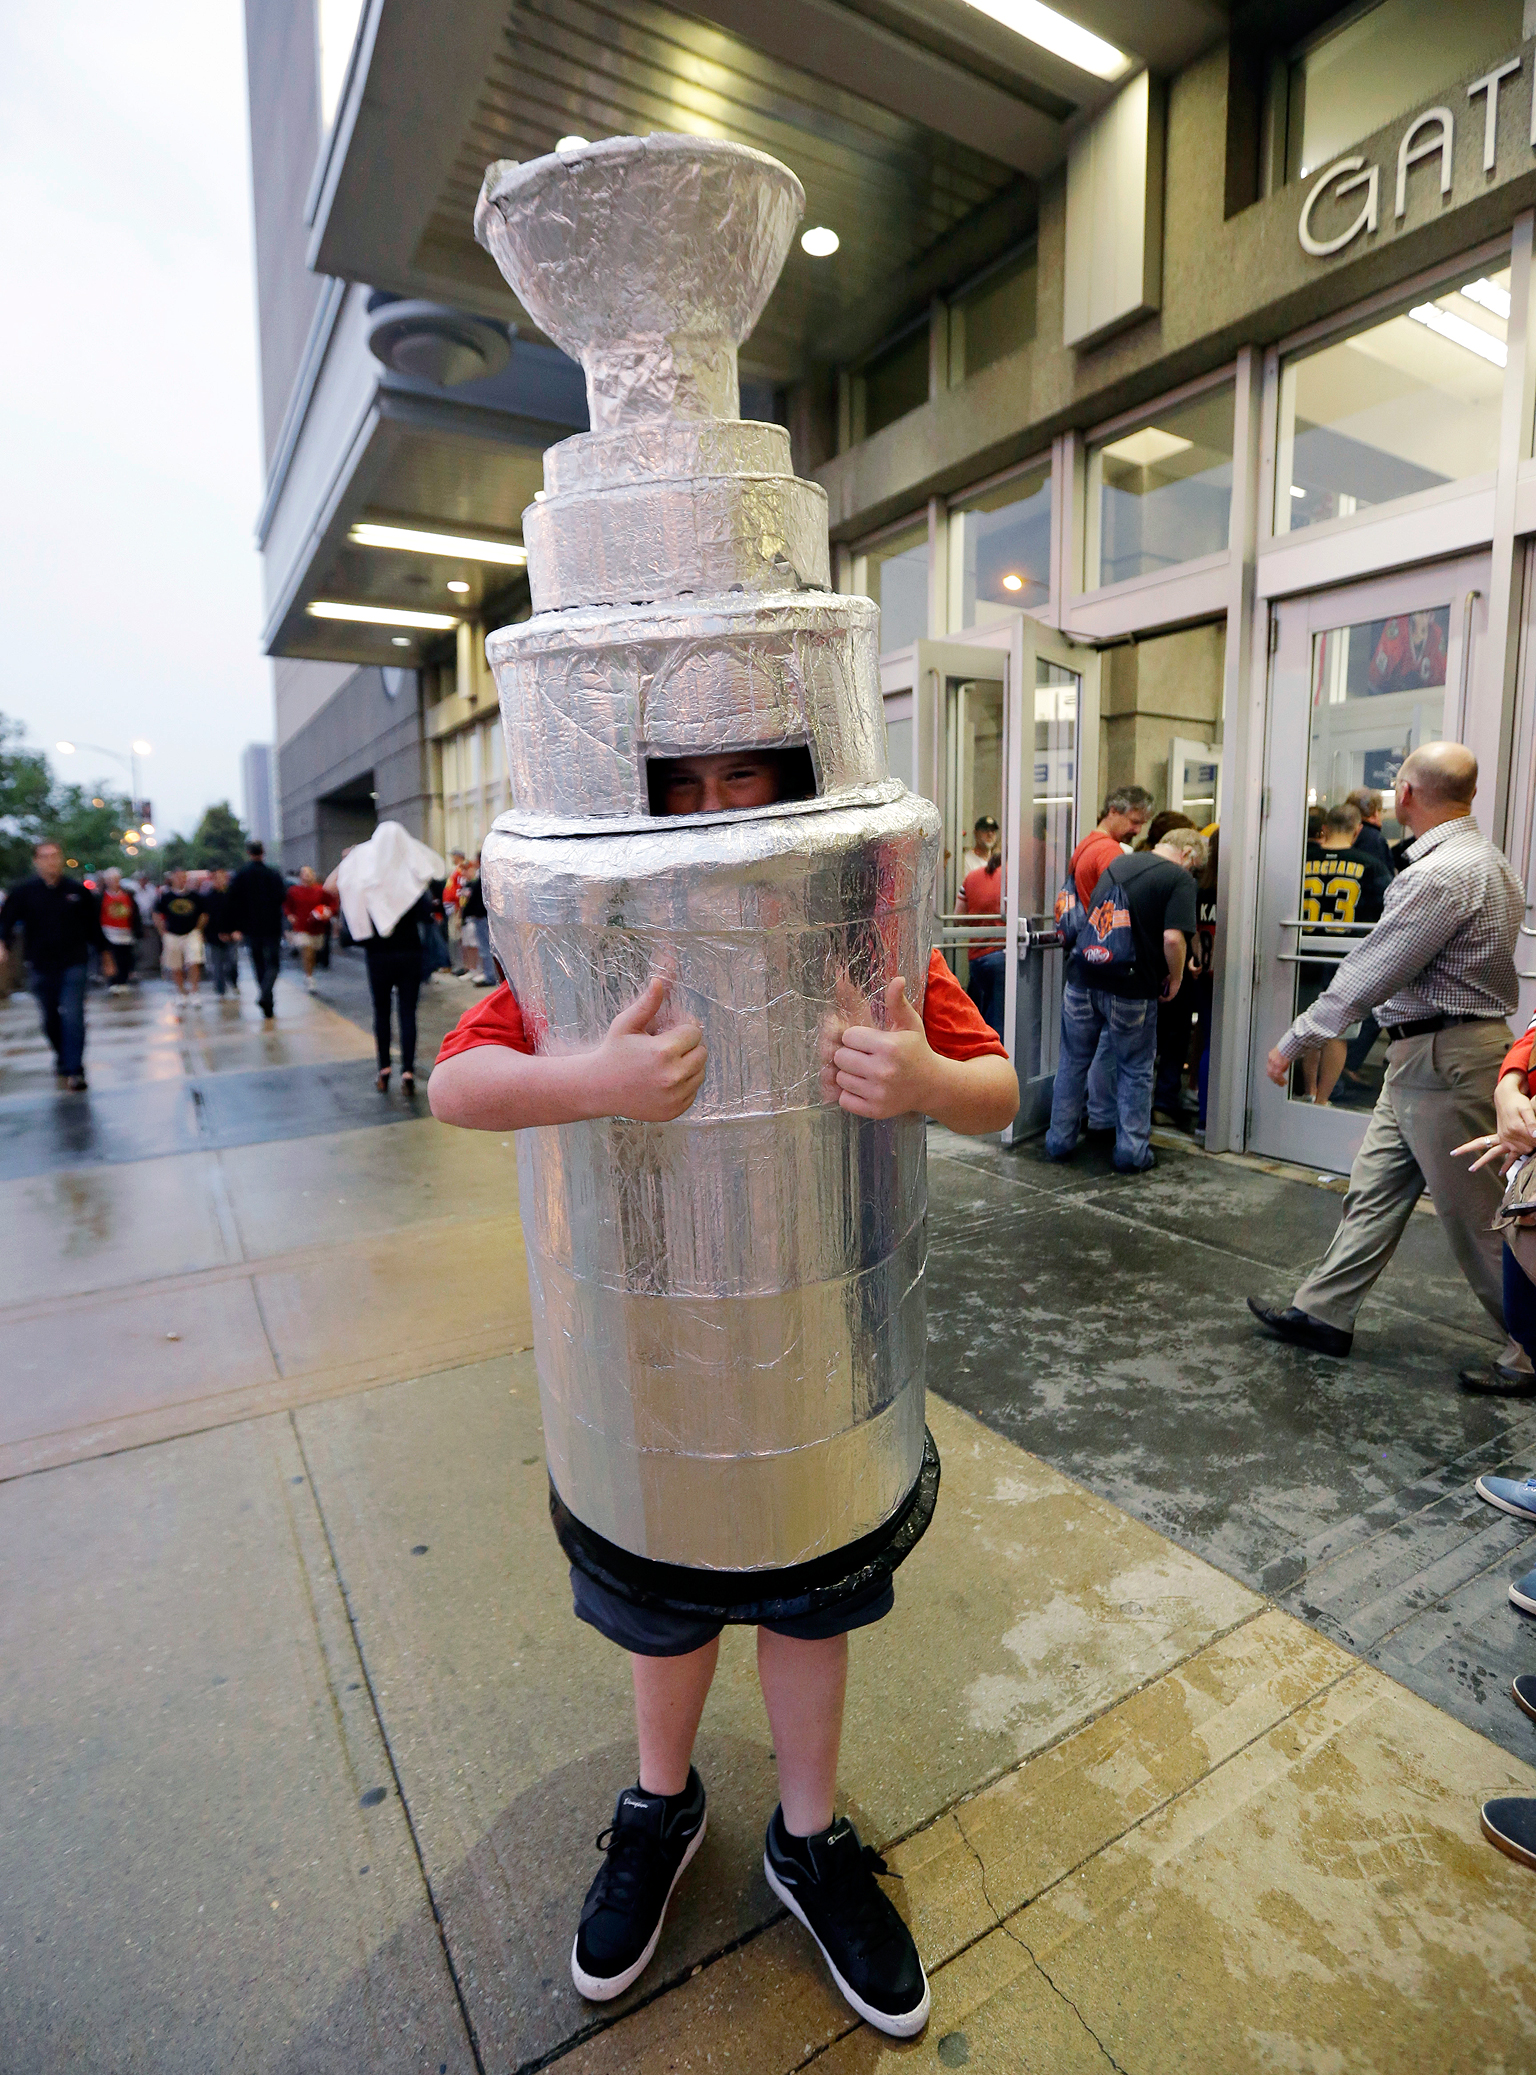 The Cup Arrives in Chicago